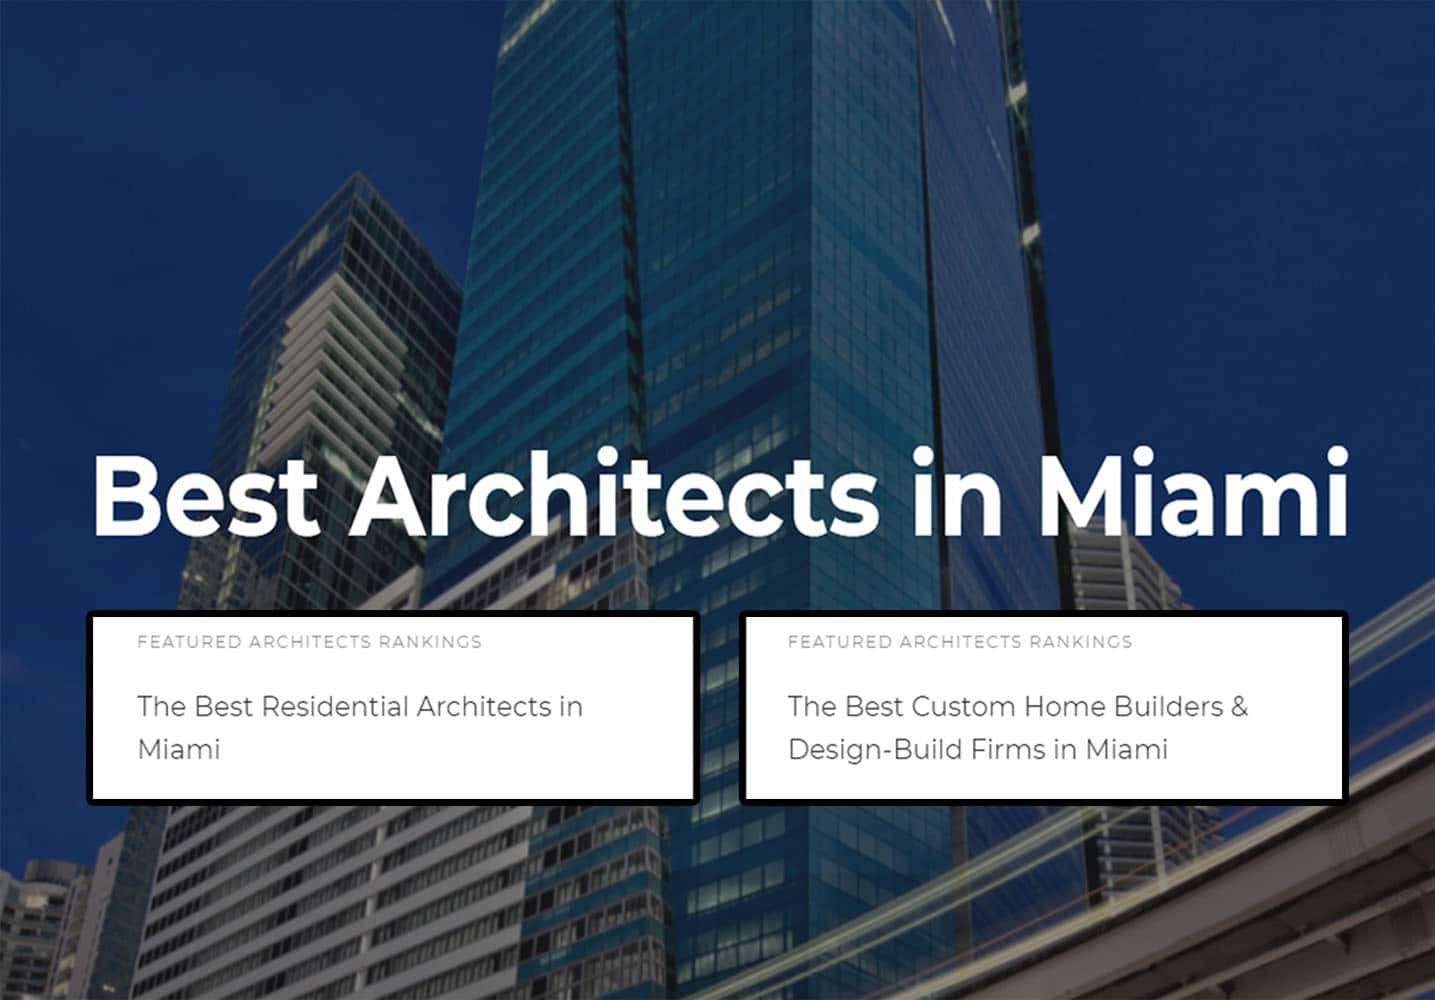 SDH Studio selected as one of the top 10 Best Architects in Miami